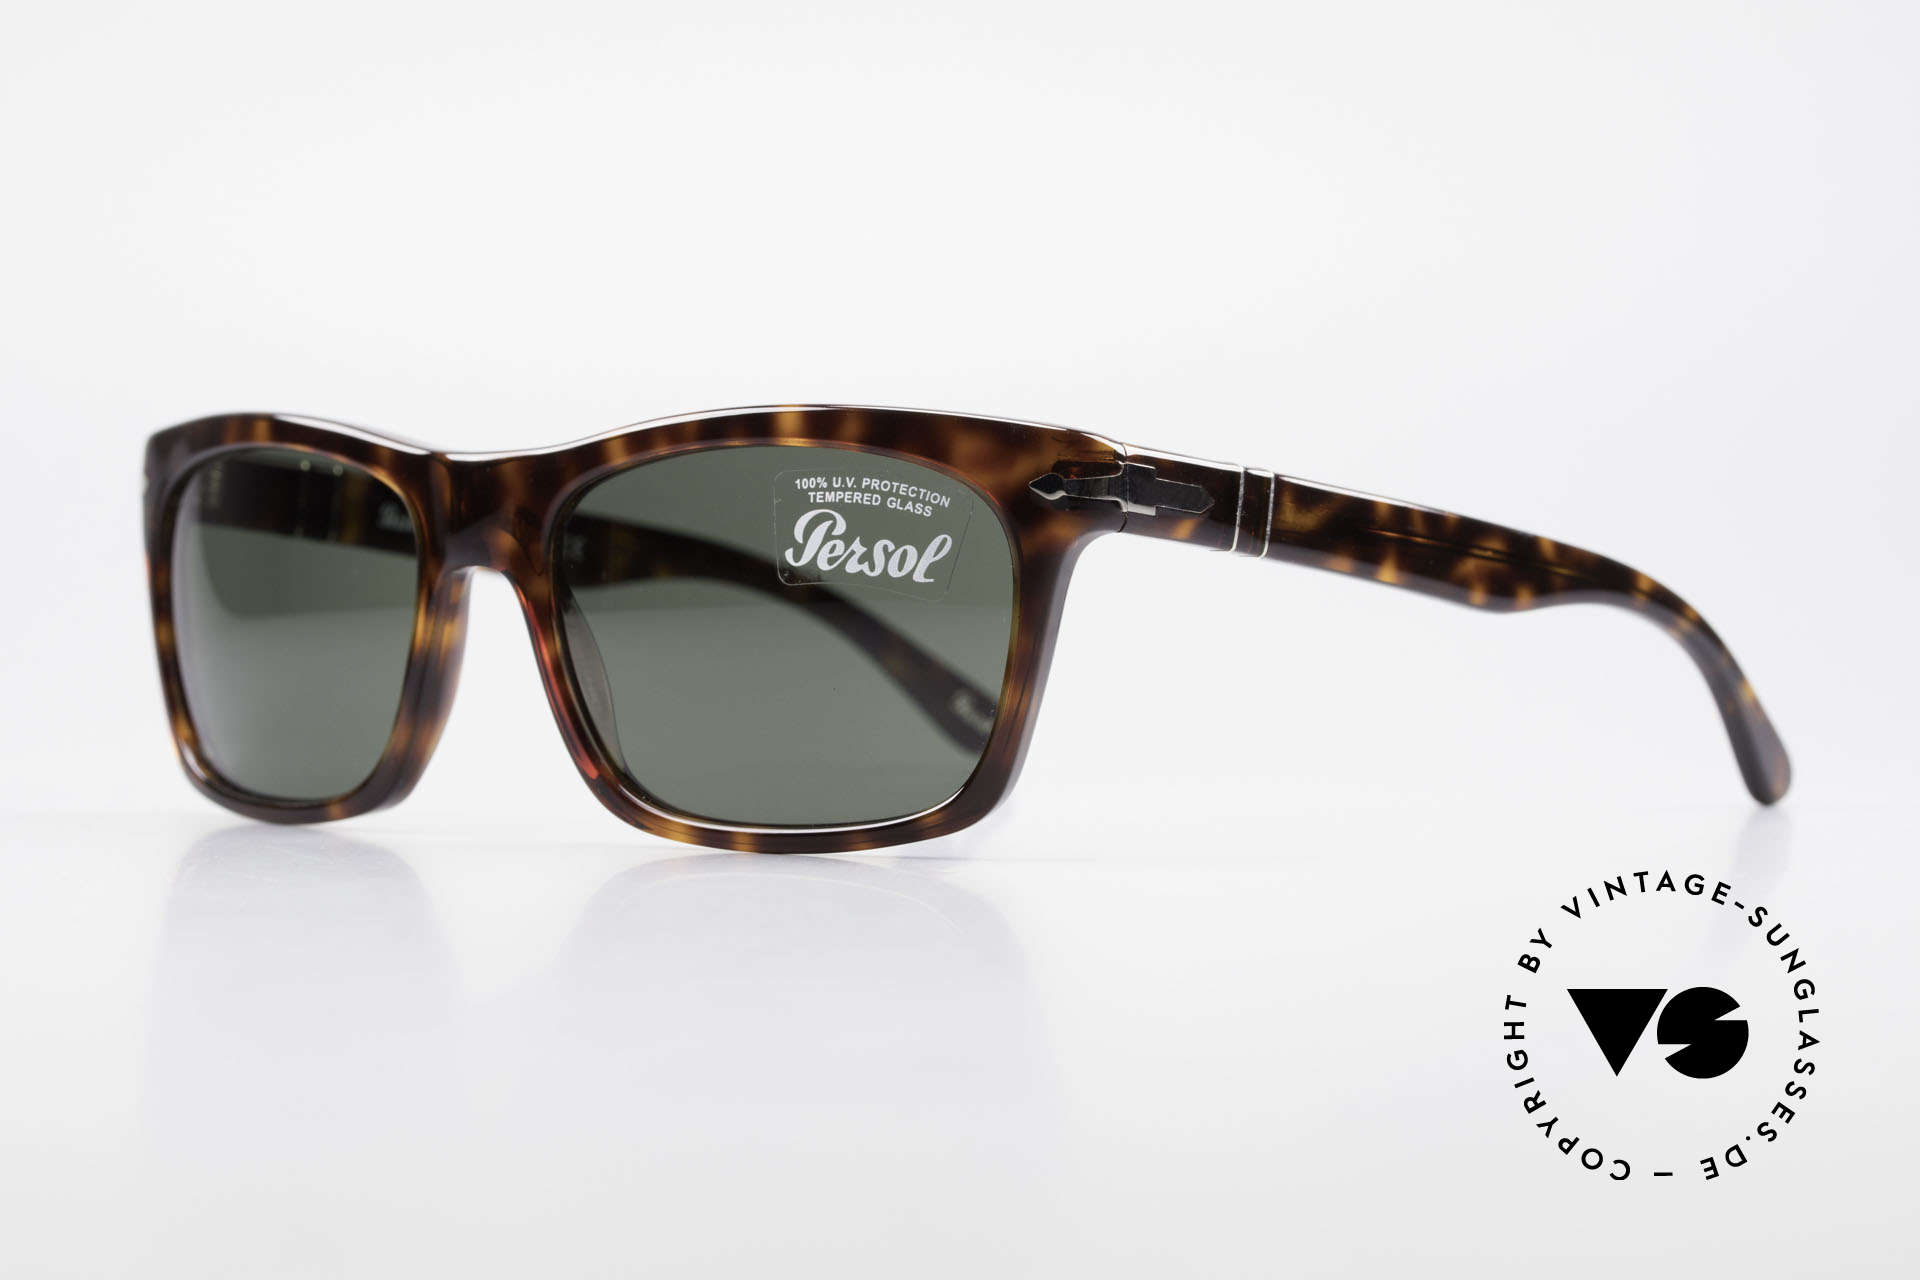 Persol 3062 Classic Unisex Sunglasses, with Persol mineral lenses; 100% UV protection, Made for Men and Women